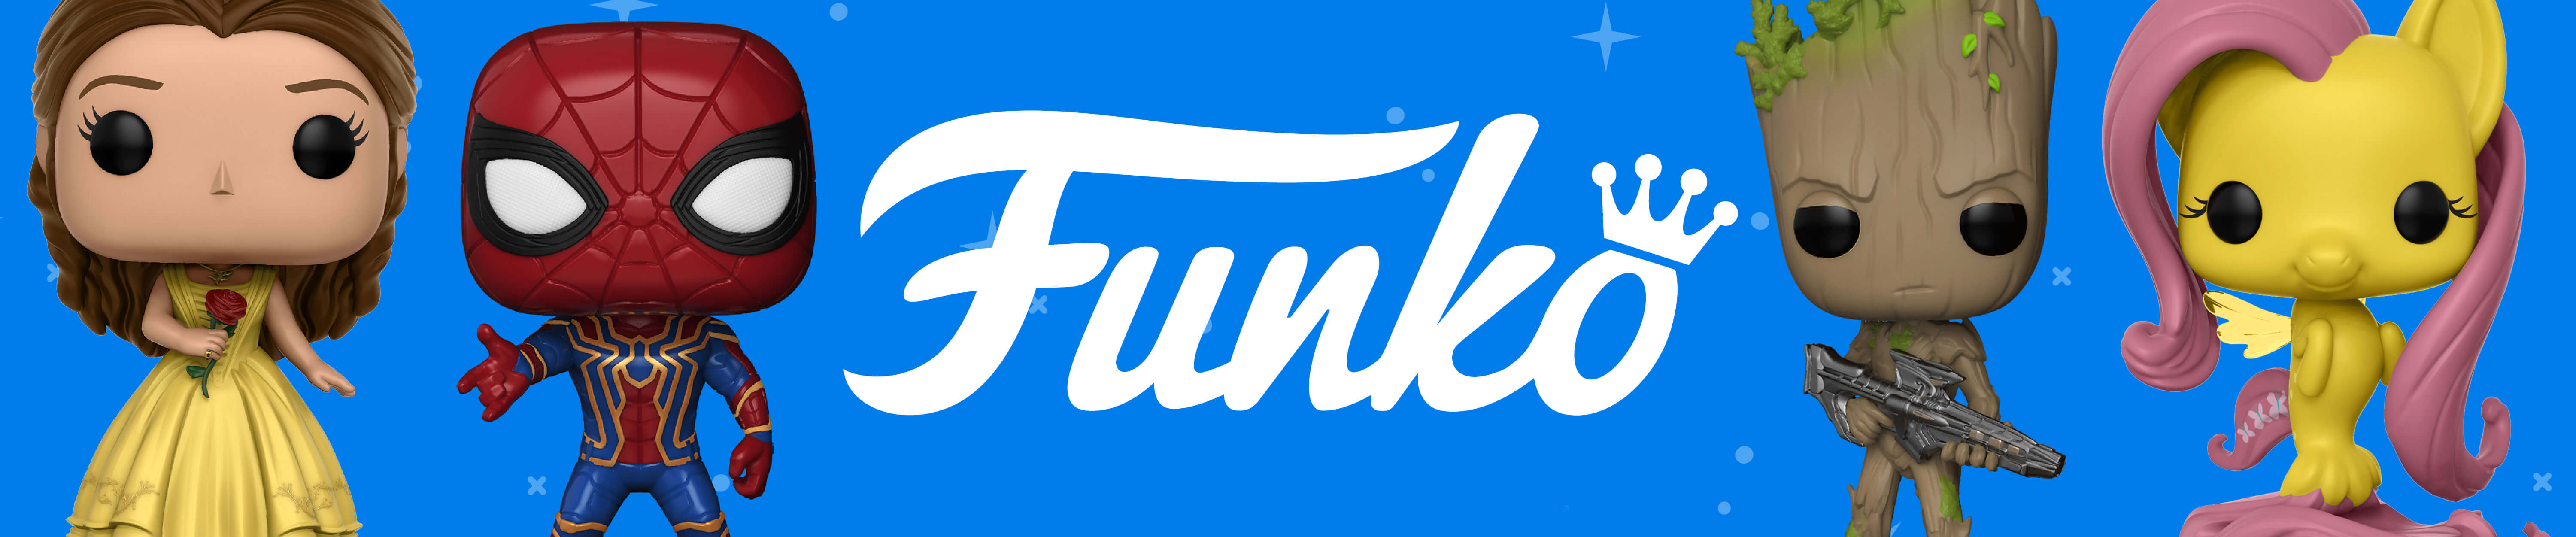 Funko-The Entertainer-Desktop Brand Page Top banner-1400 x 300-01.jpg